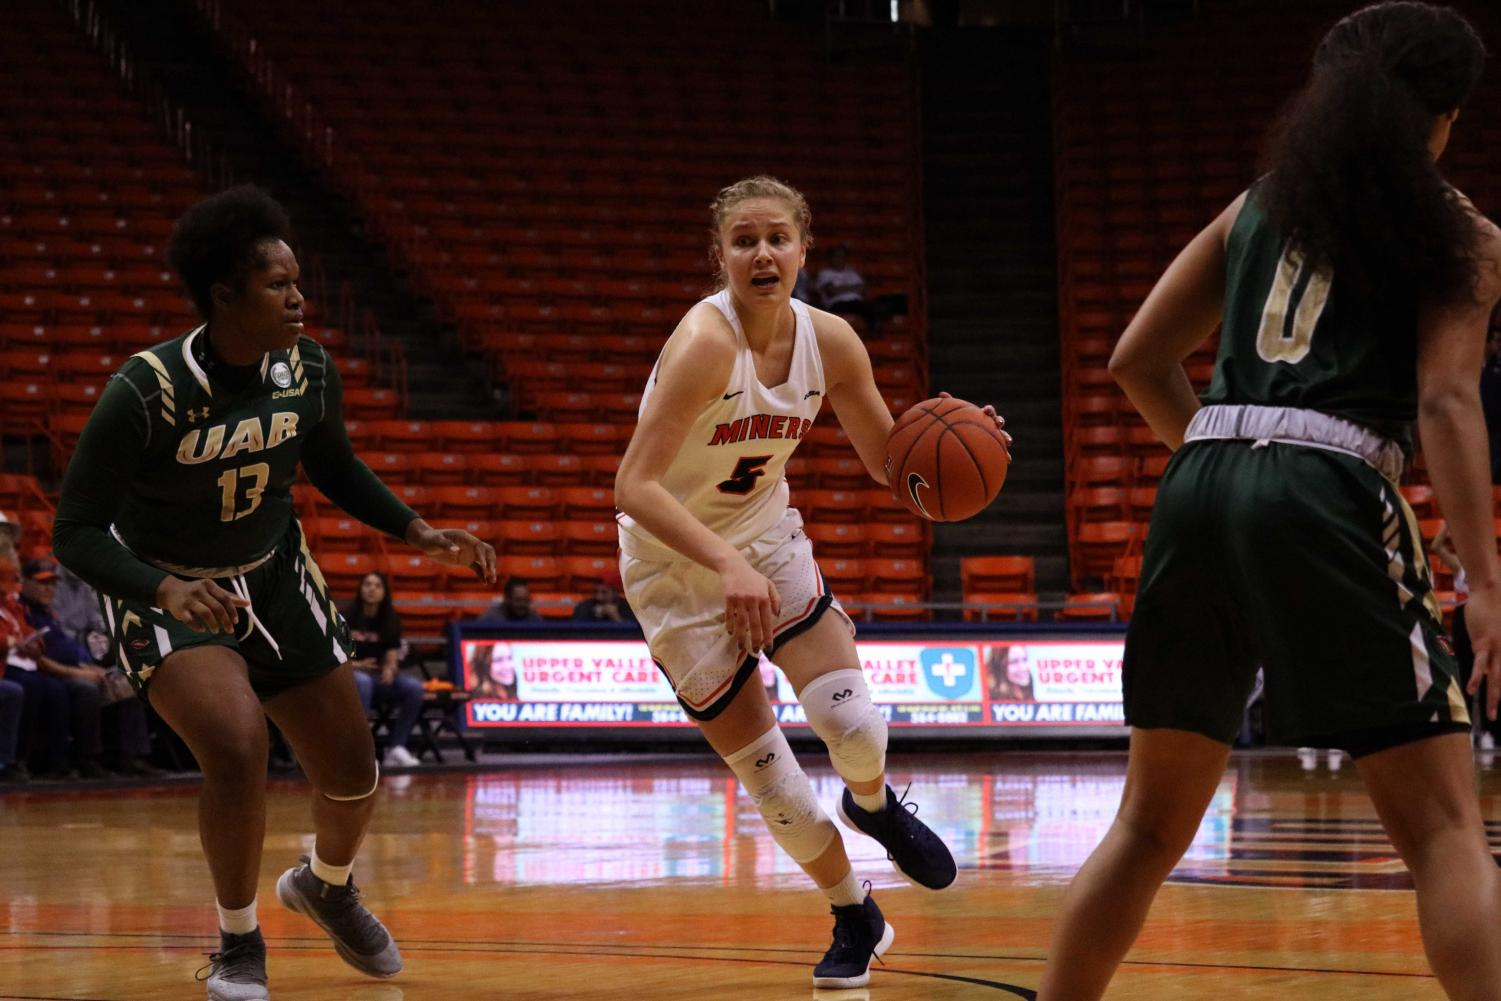 Zuzanna Puc finished with a double-double scoring 11 points and a career-high 13 rebounds.